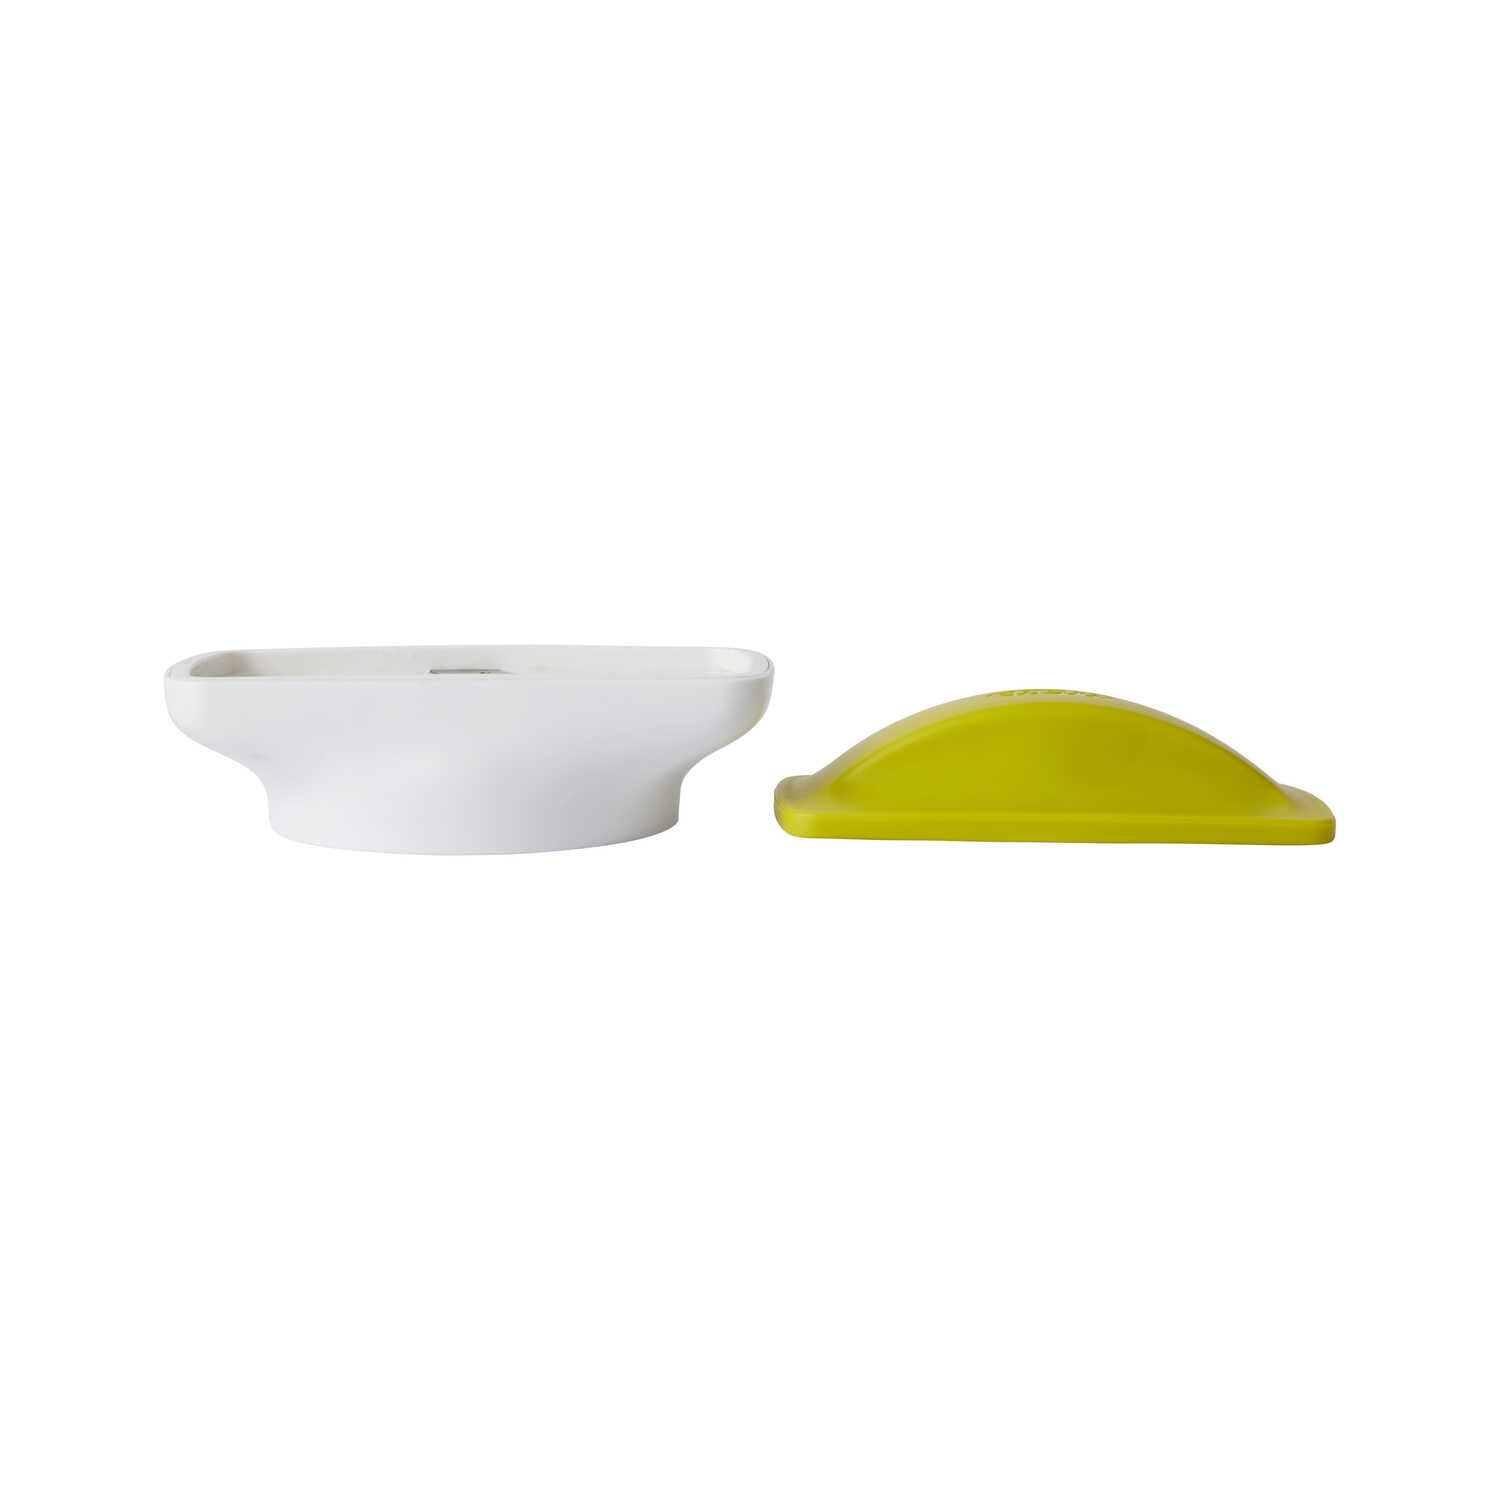 Chef'n  Quickstick  White/Yellow  Wedge/Spear Slicer Prep Lid